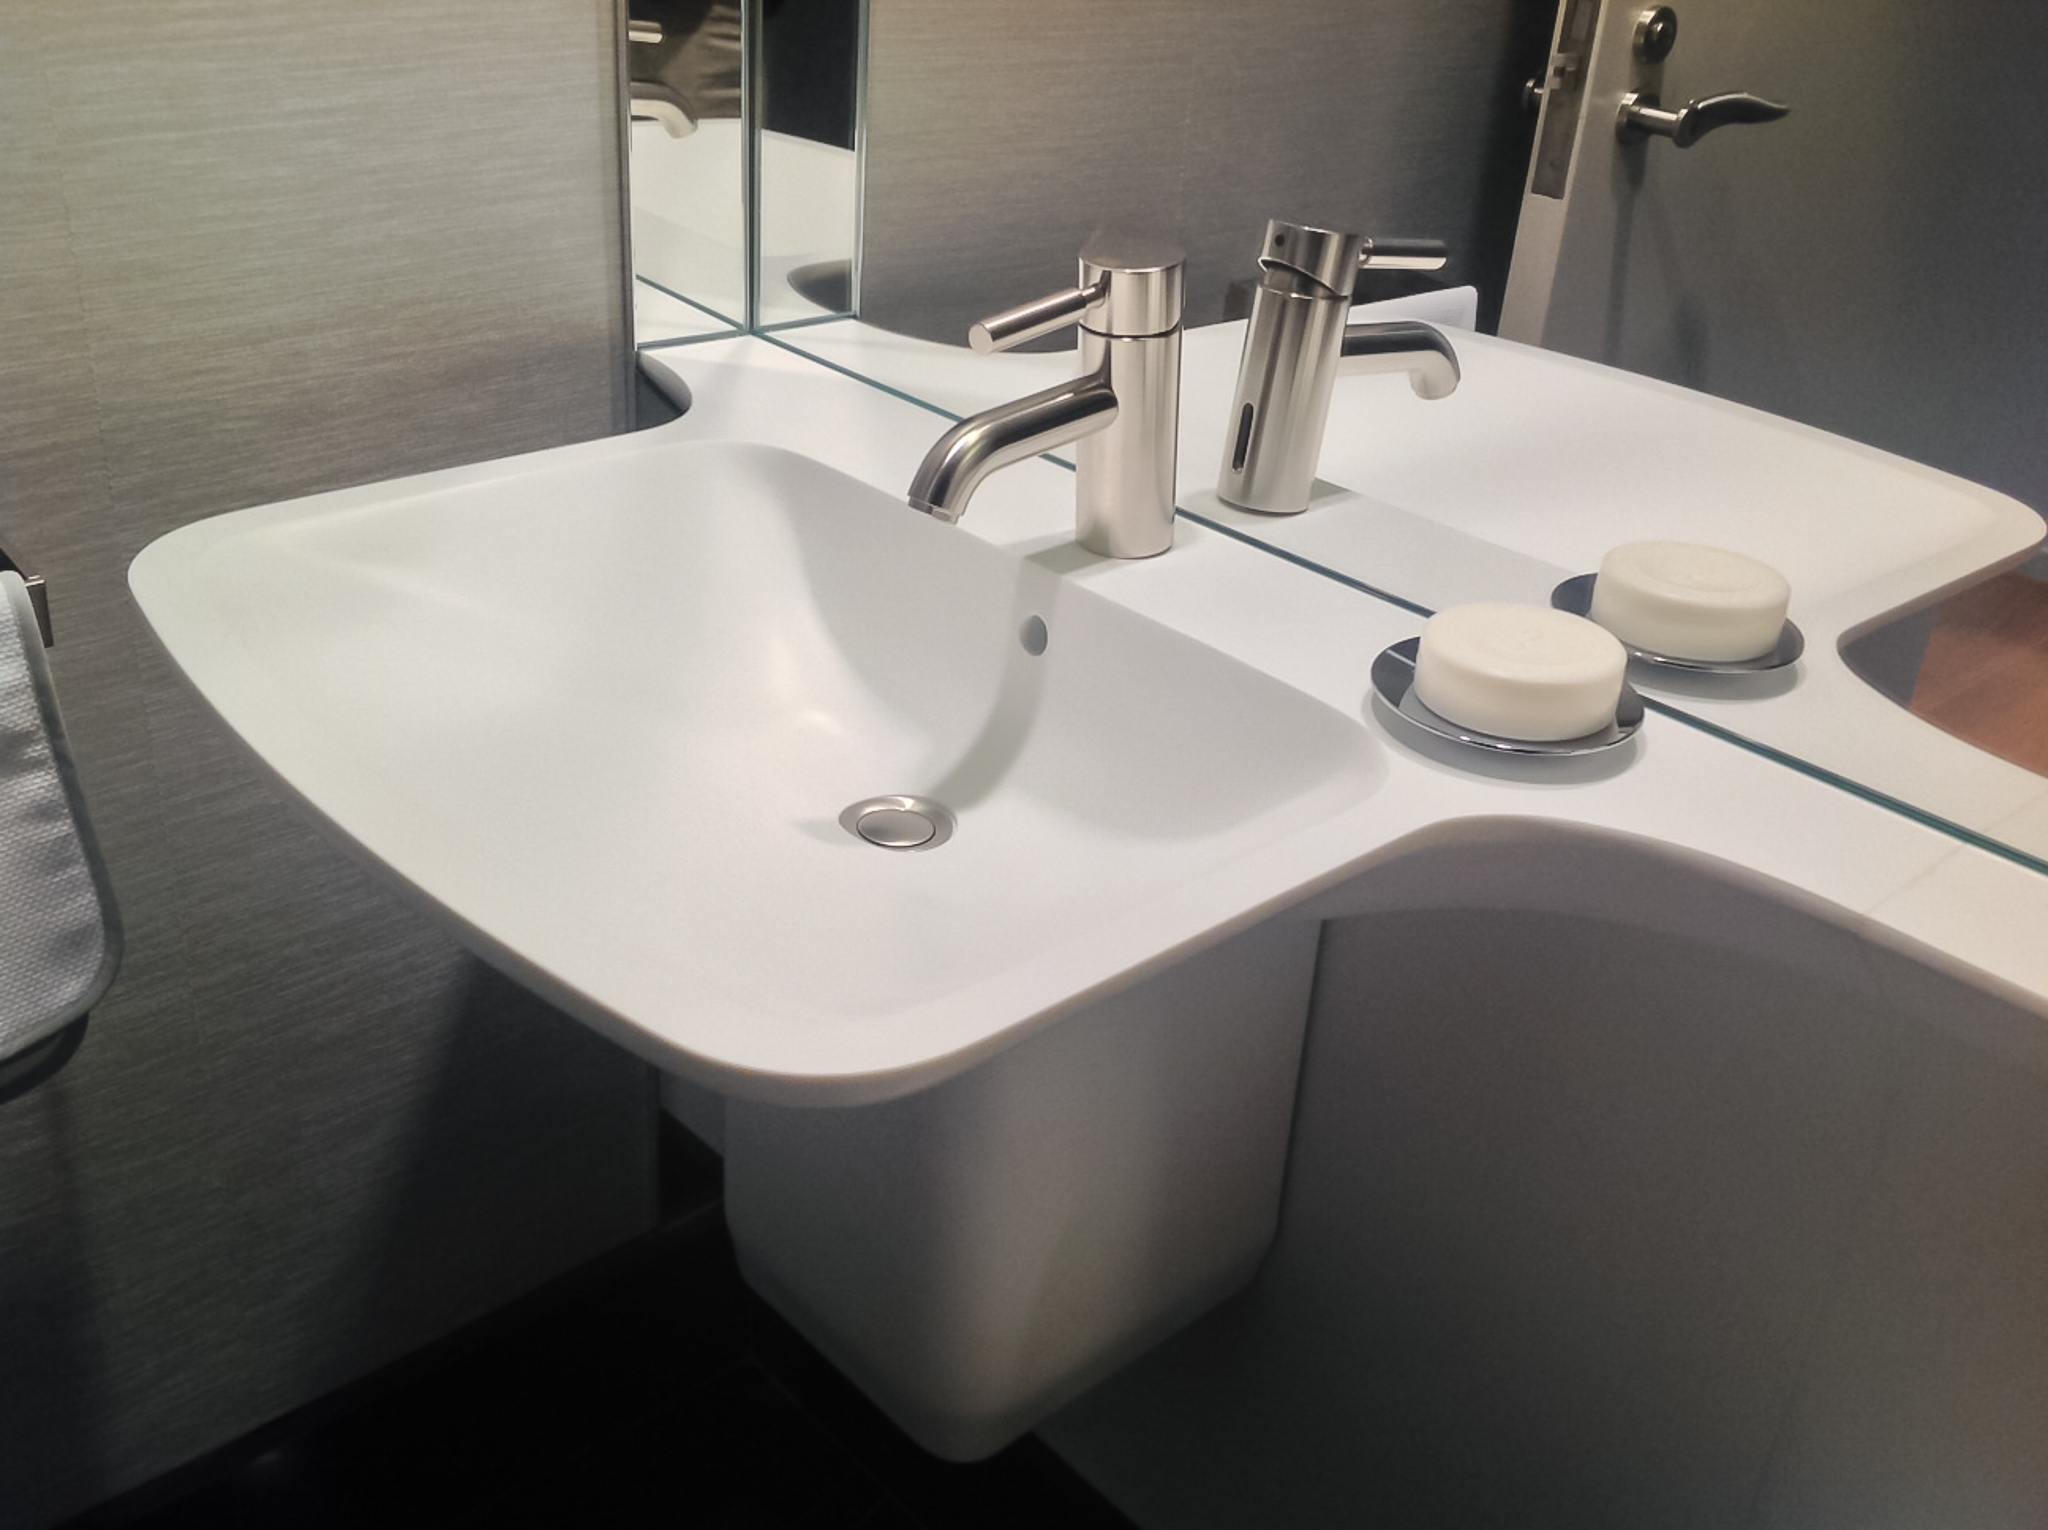 Sterling_Surfaces_Thermoformed_Corian_Sink-2.jpg